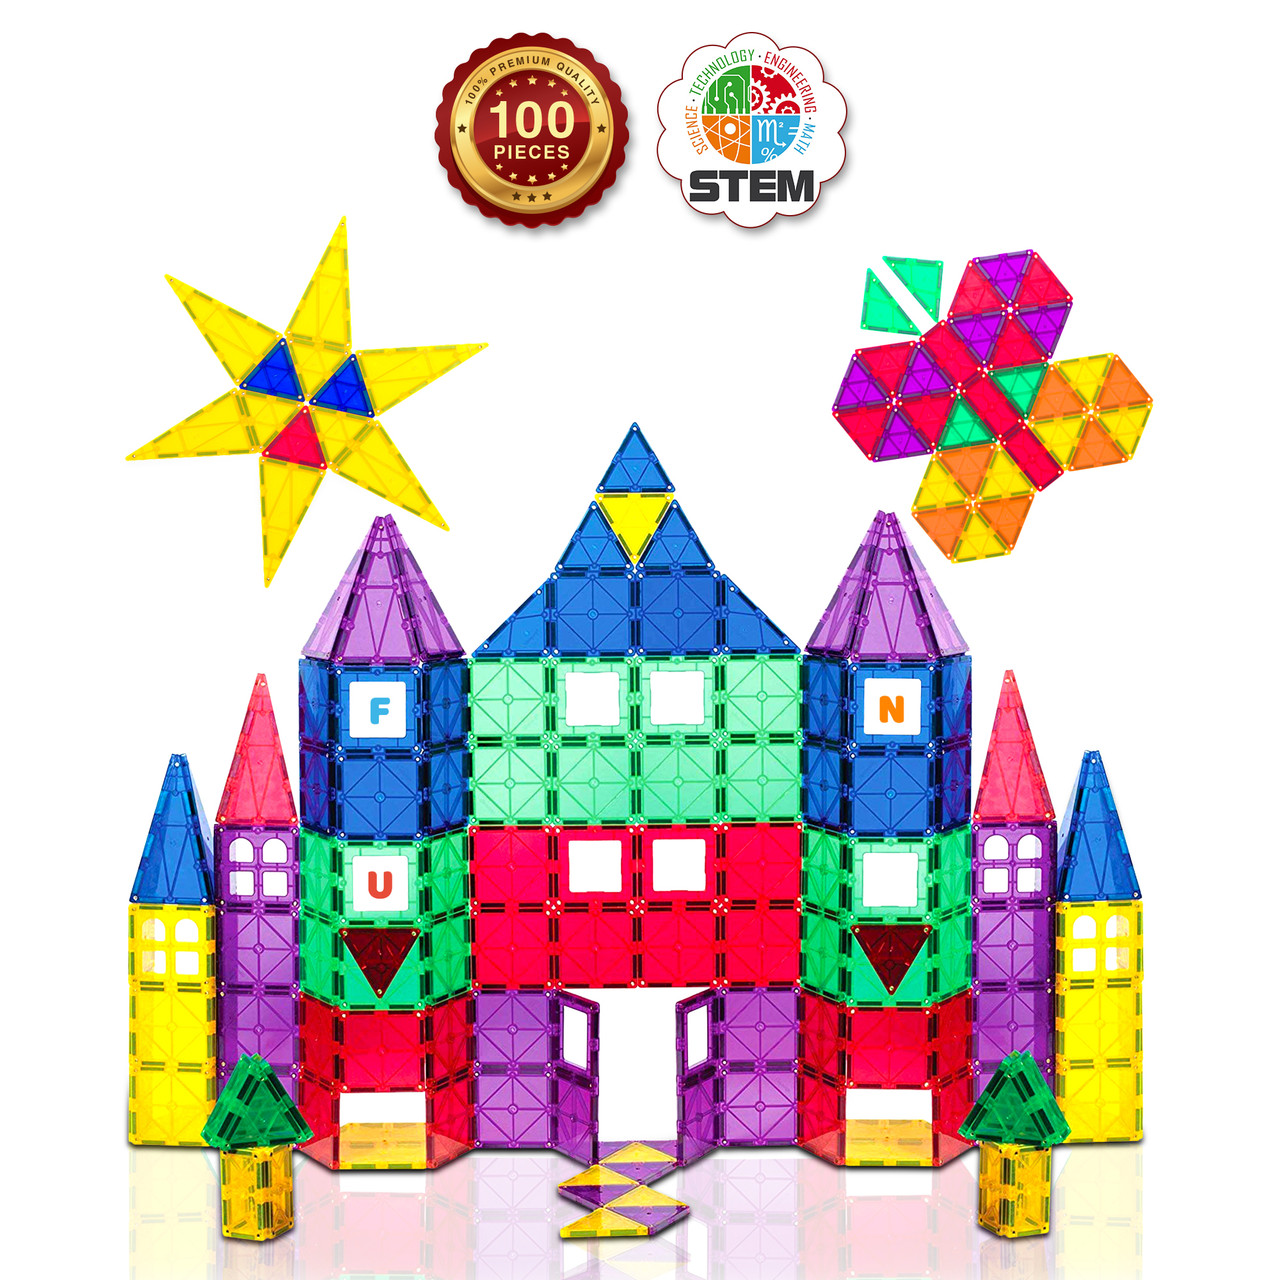 Playmags 3d Magnetic Blocks For Kids Set Of 100 Blocks To Learn Shapes Colors Alphabet Stem Magnetic Toys Develop Motor Skills Creativity Colorful Durable Magnet Building Tiles Idea Book Toys 4 U